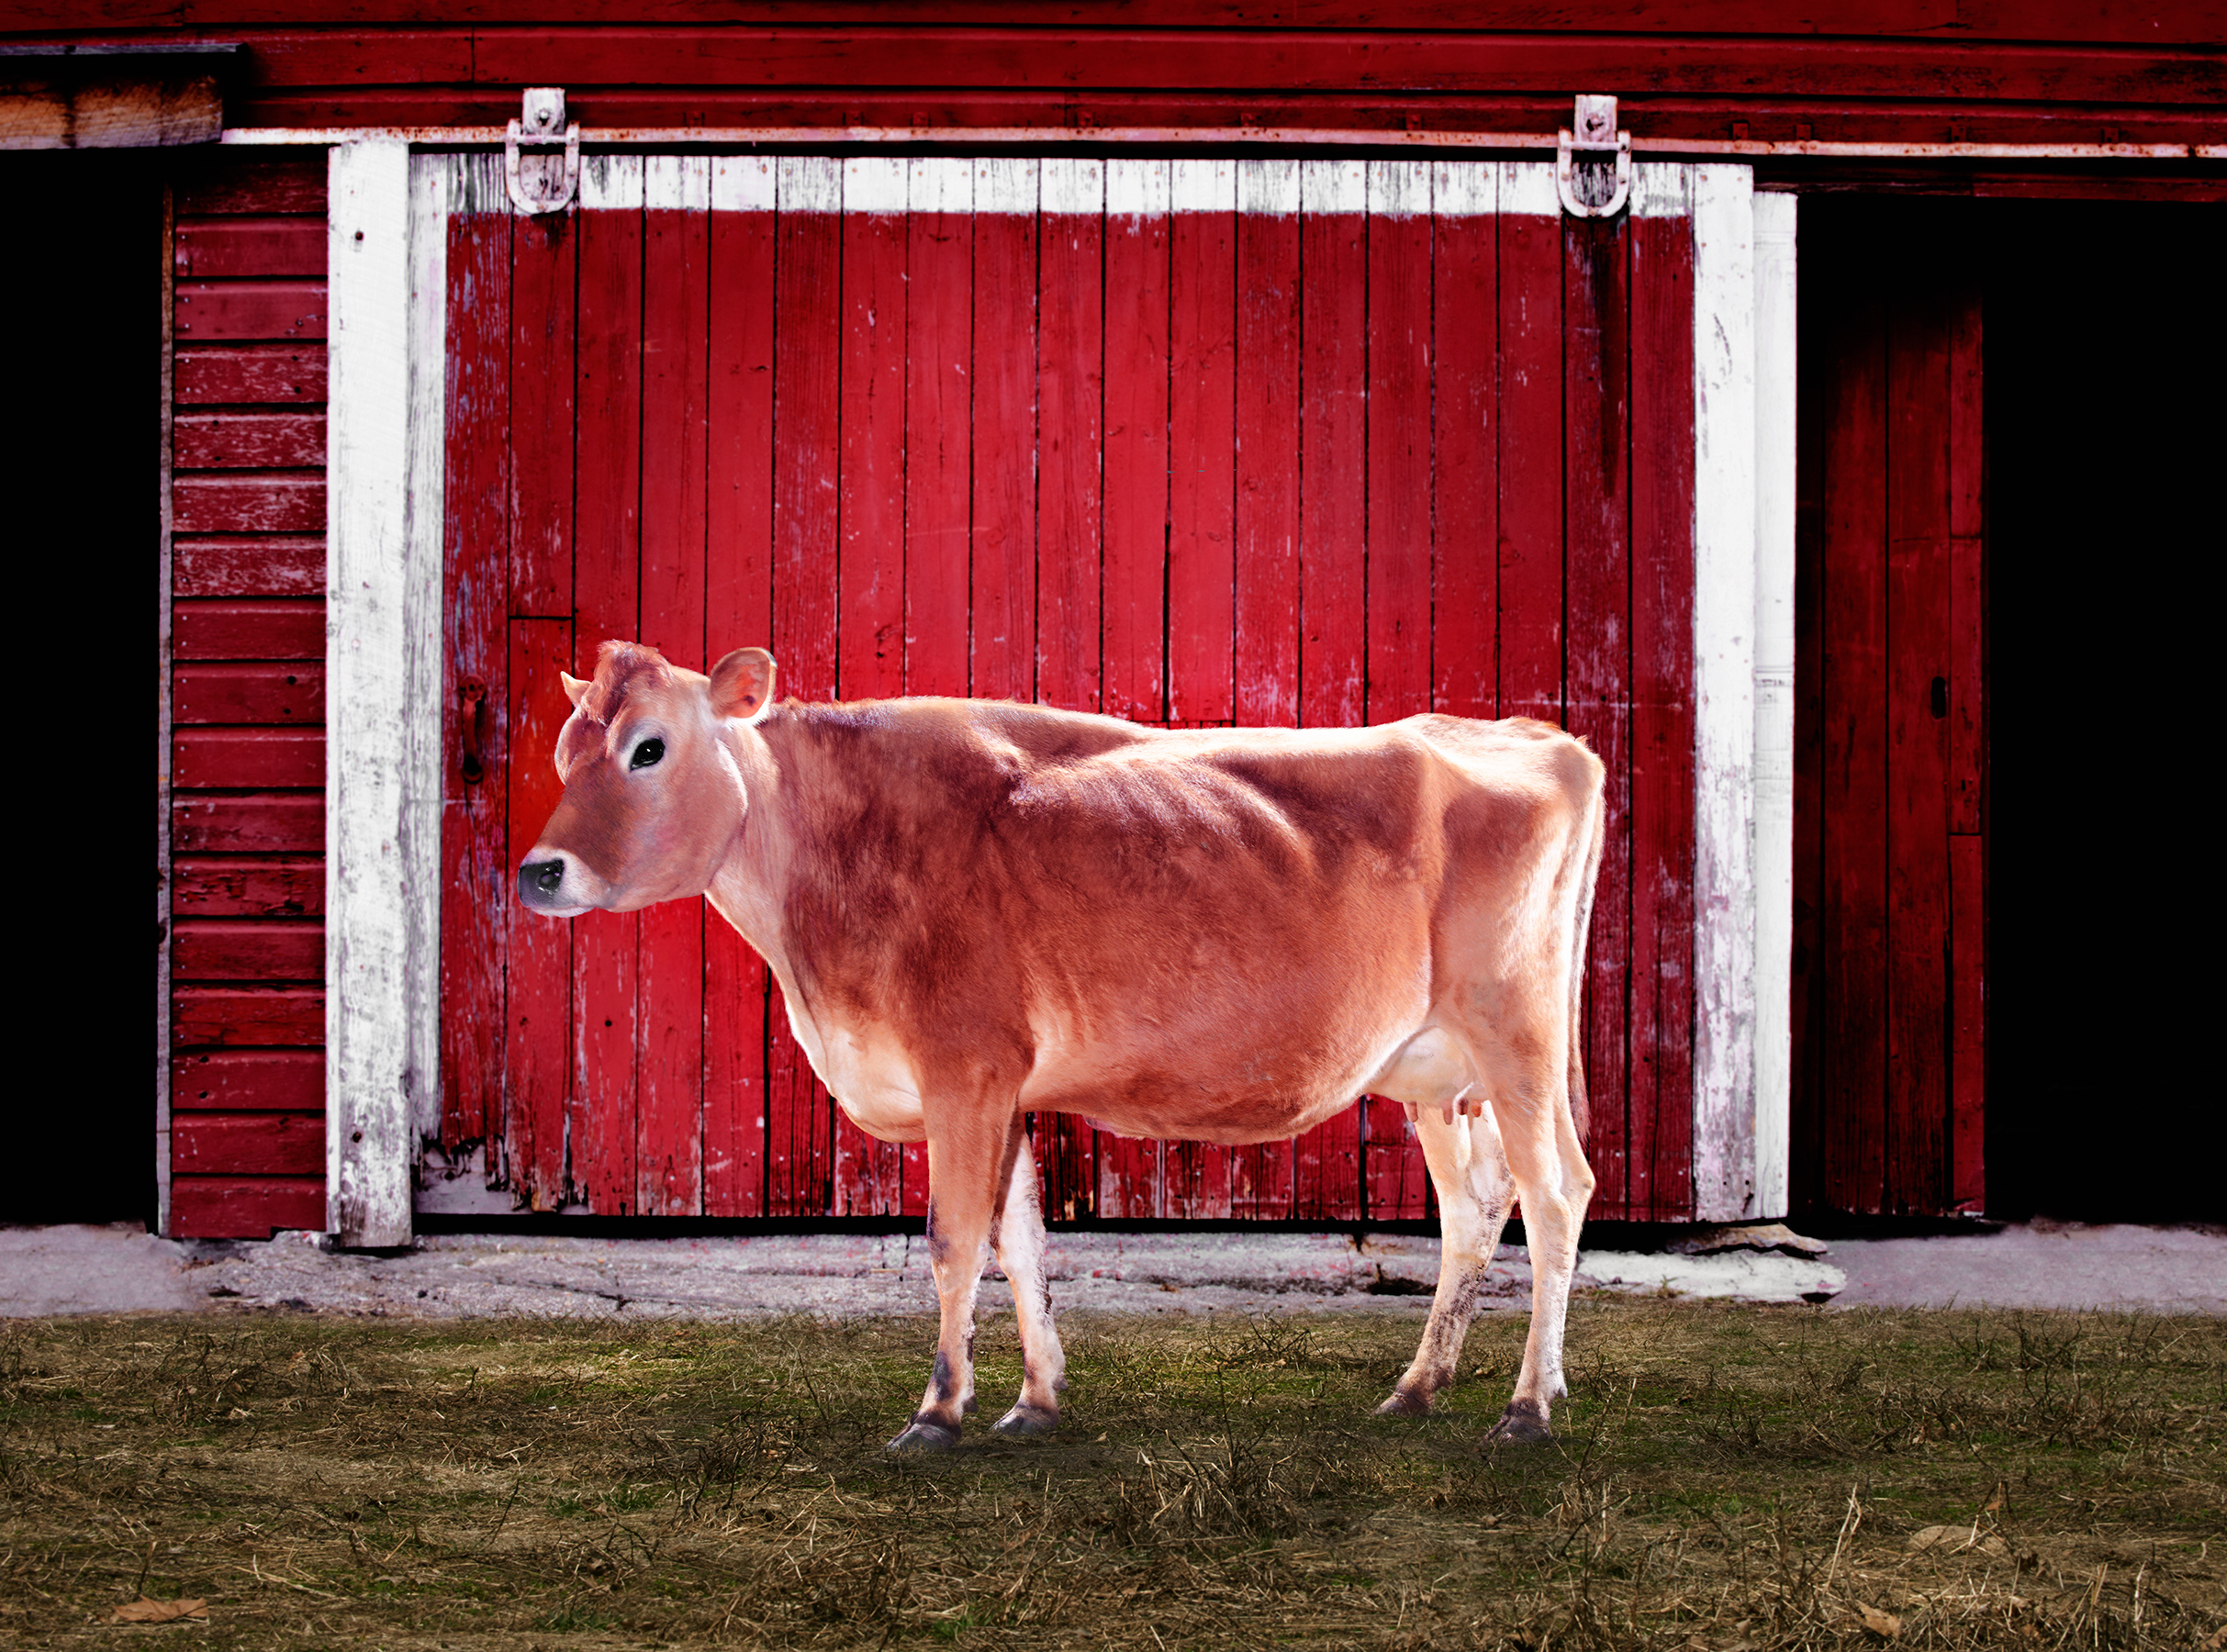 COW-JERSEY-COW-STONEWALL-DAIRY-RED-BARN-©-JONATHAN-R.-BECKERMAN-PHOTOGRAPHY-040815.jpg